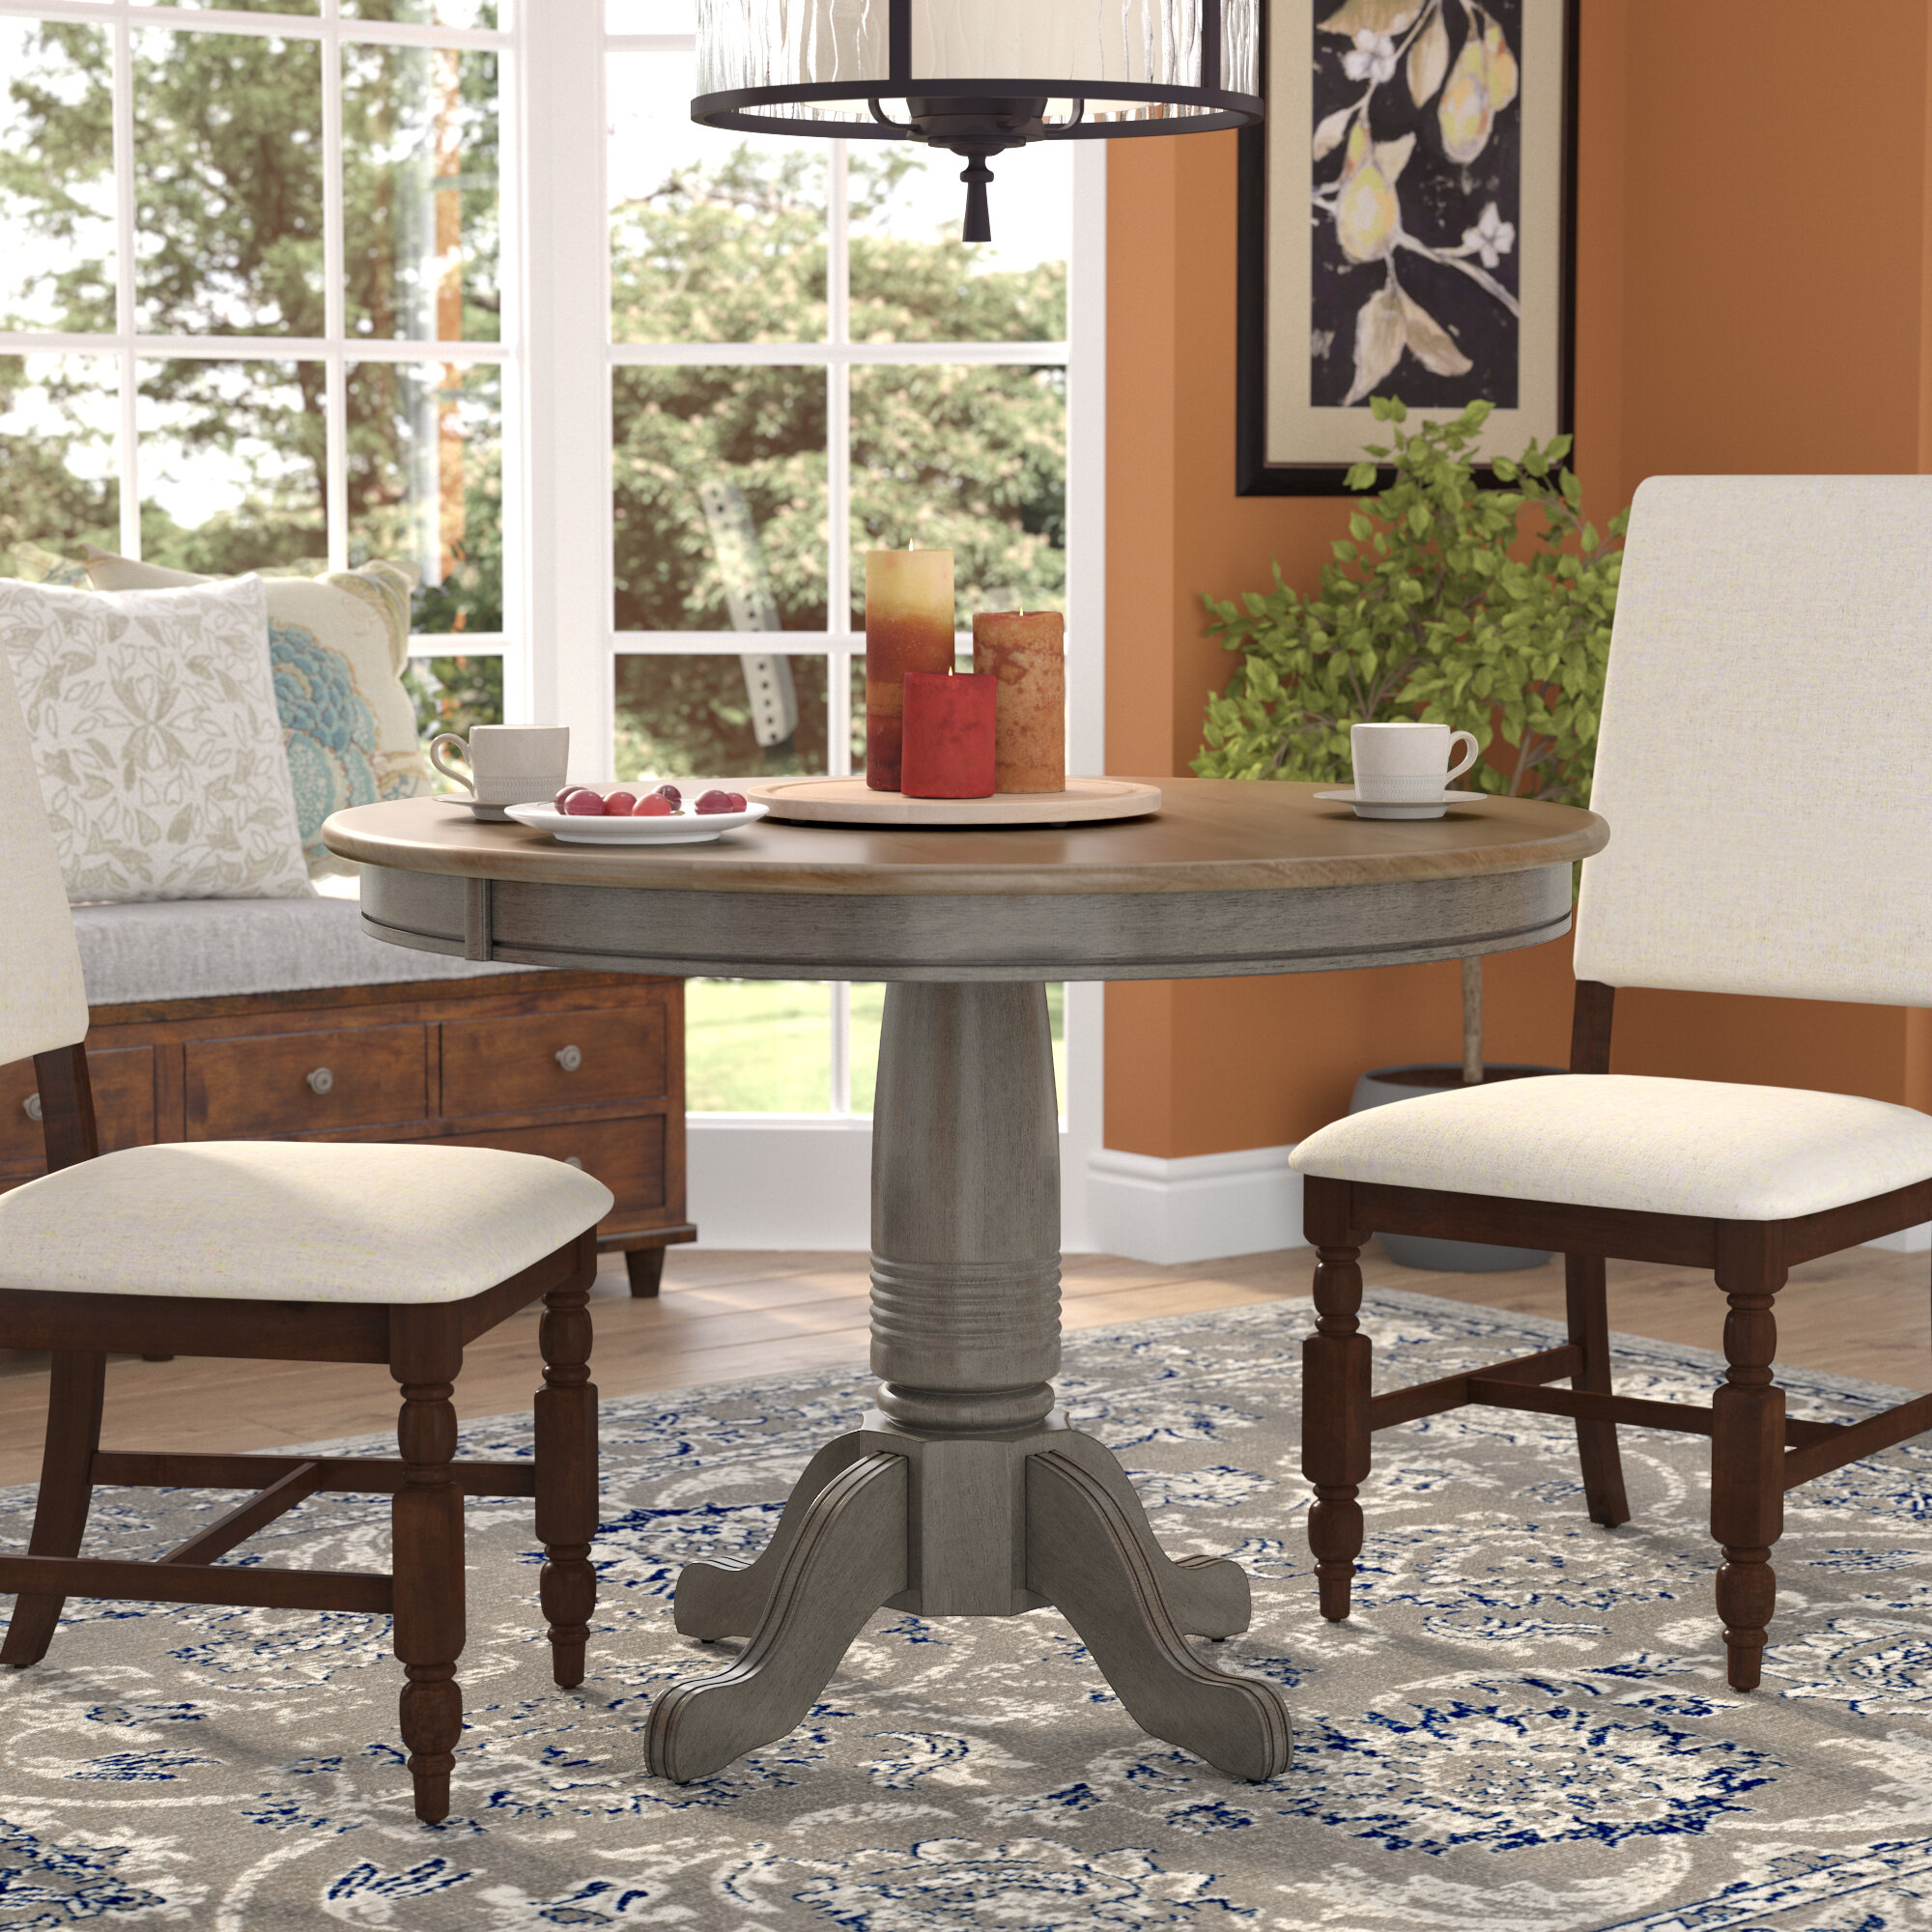 Alcott Hill Melin Round Dining Table Reviews Wayfair